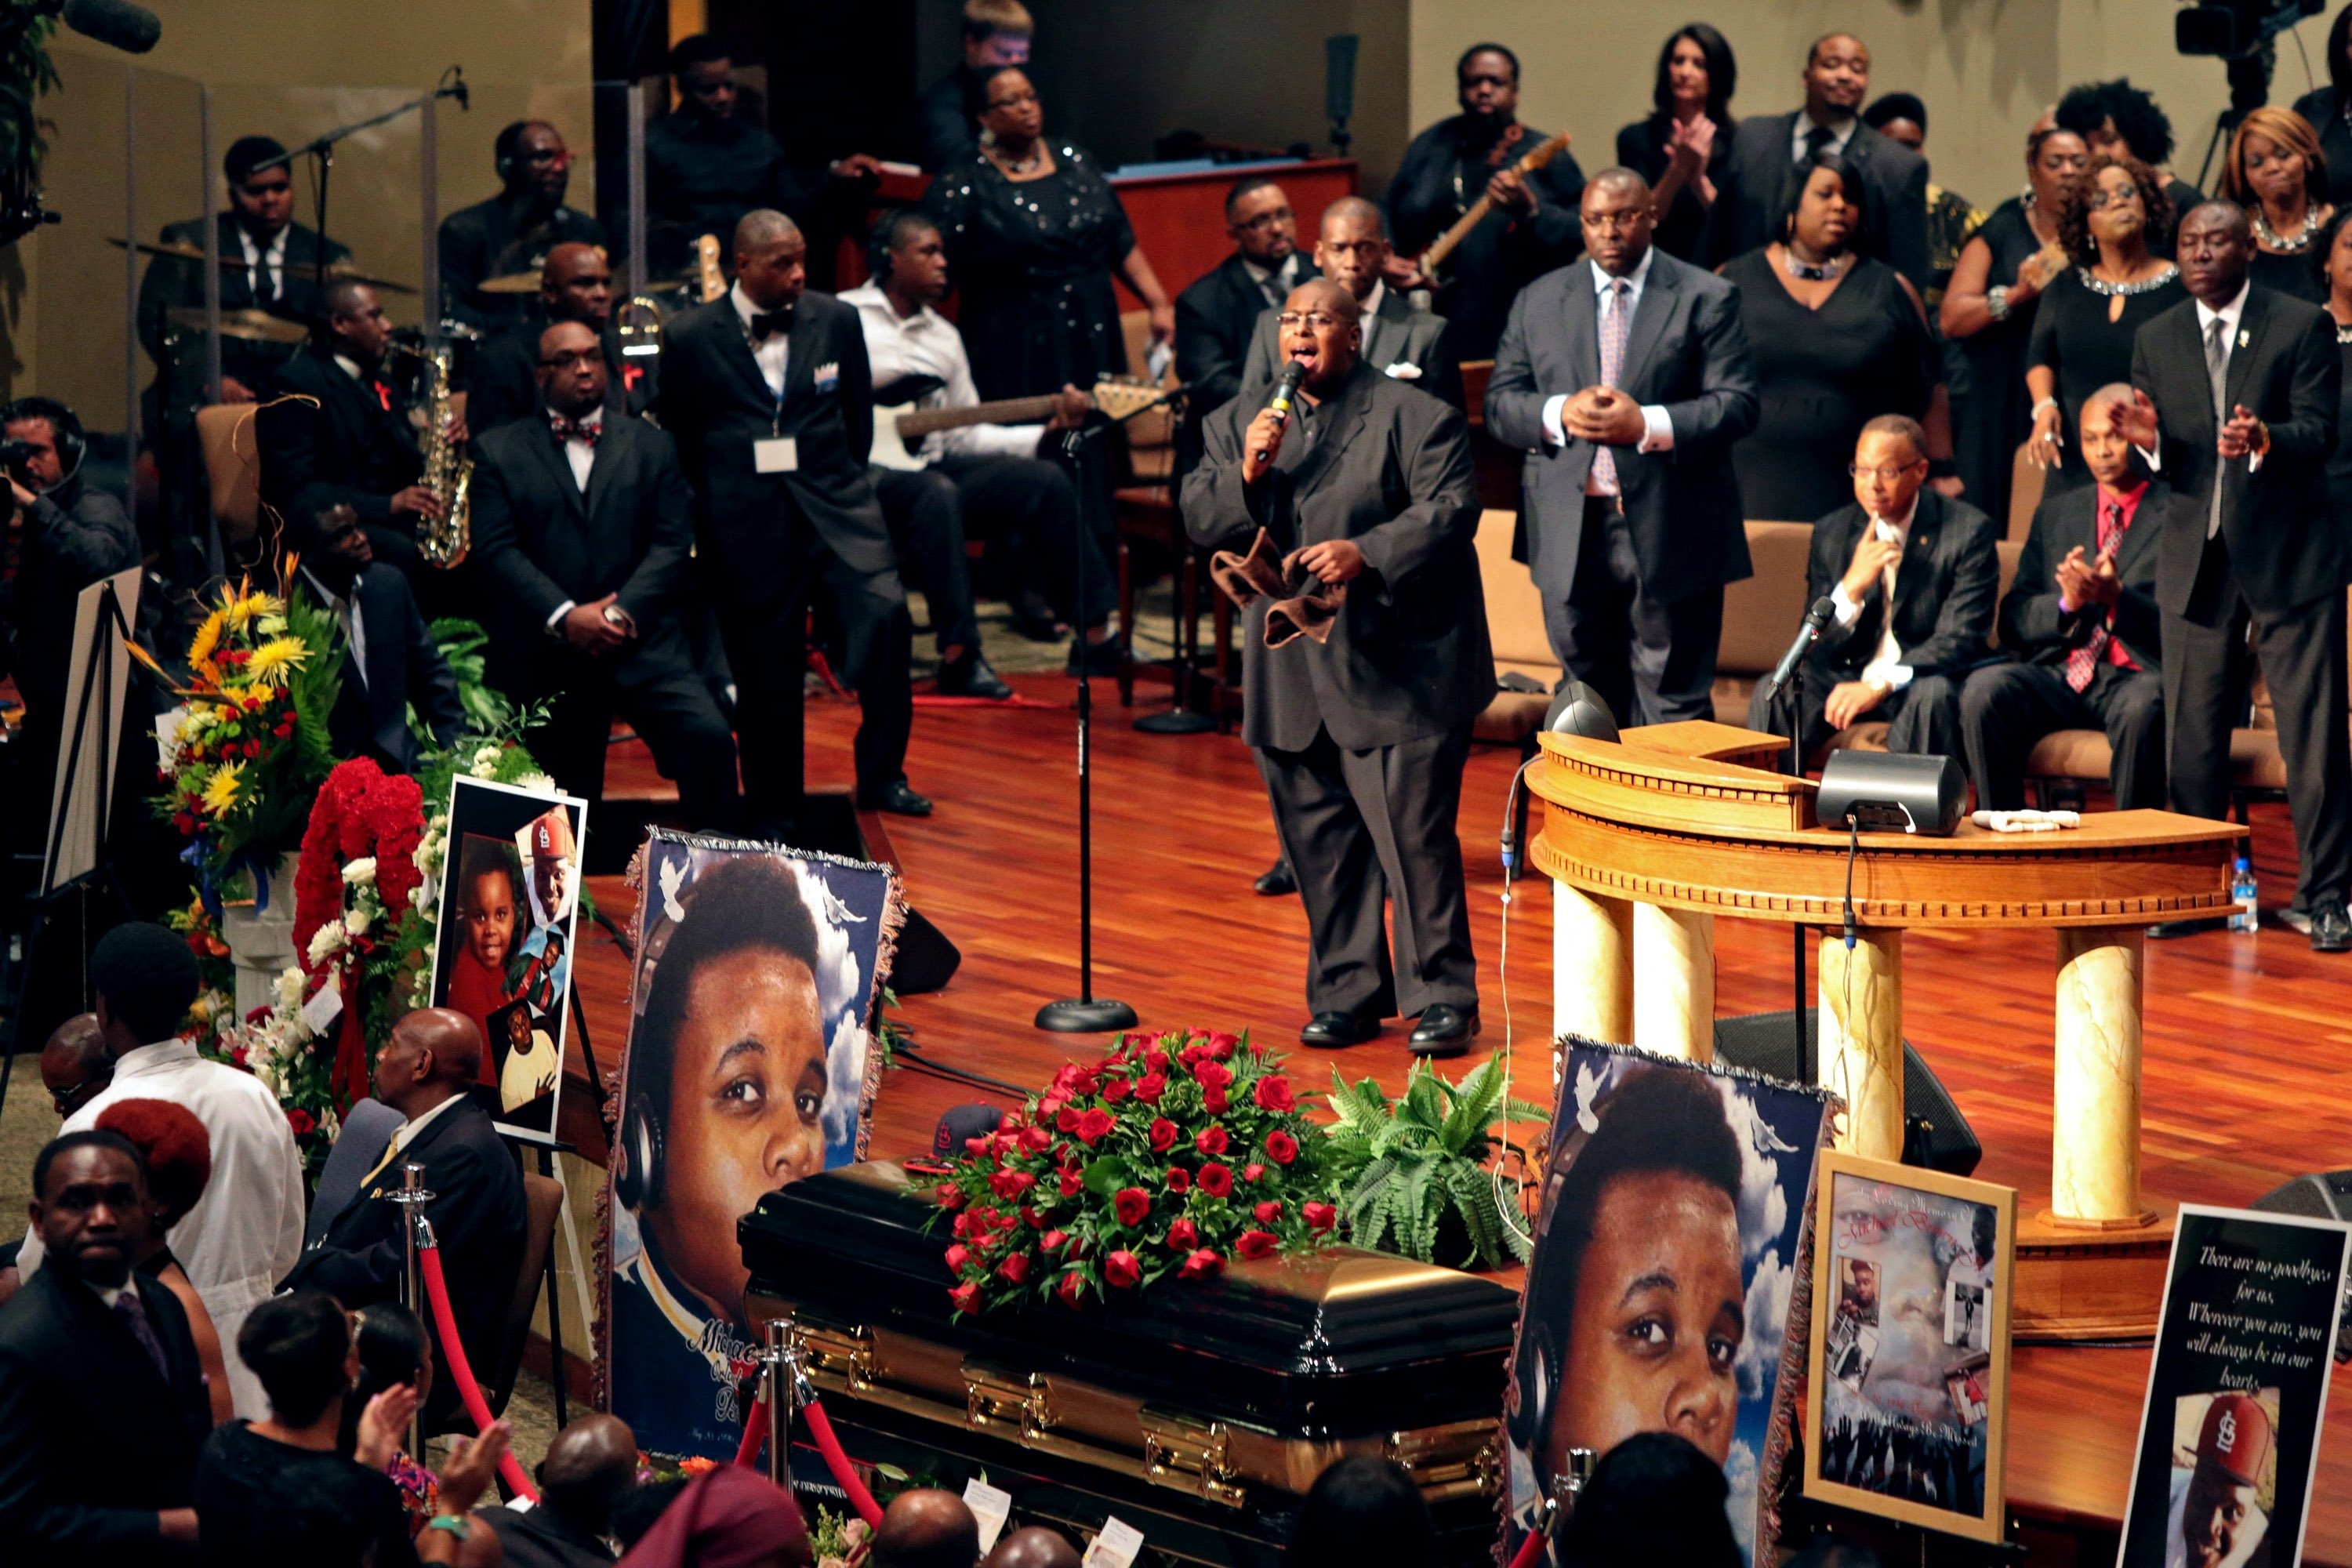 People attend the funeral of Michael Brown inside the Friendly Temple Missionary Baptist Church in St. Louis on Aug. 25, 2014.